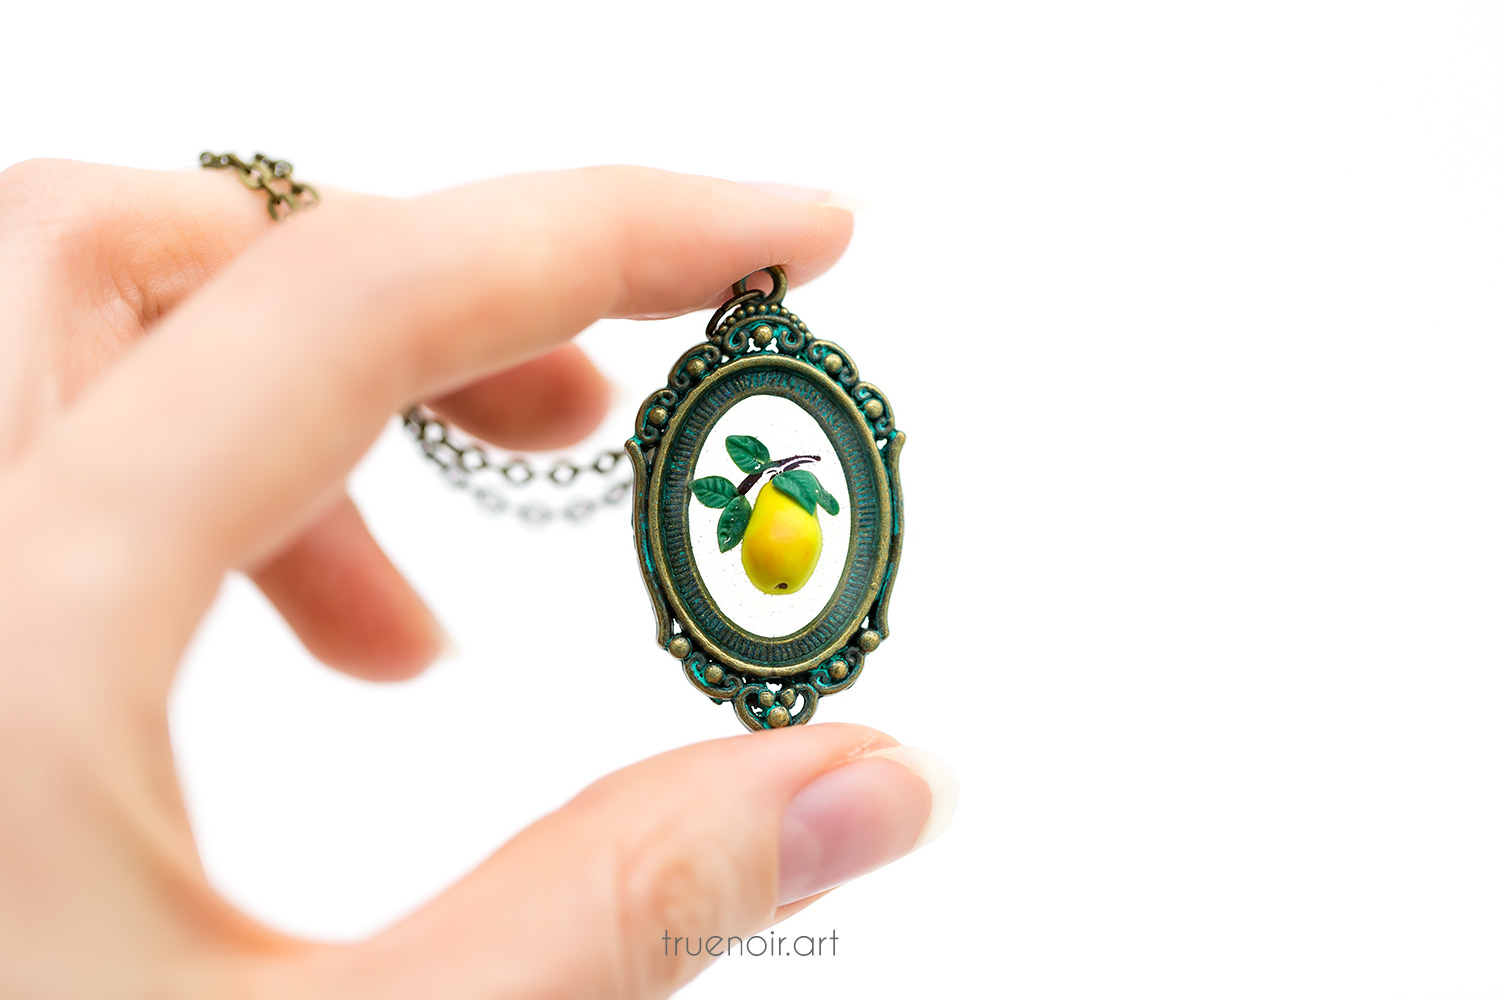 Floating pear pendant held in hand.